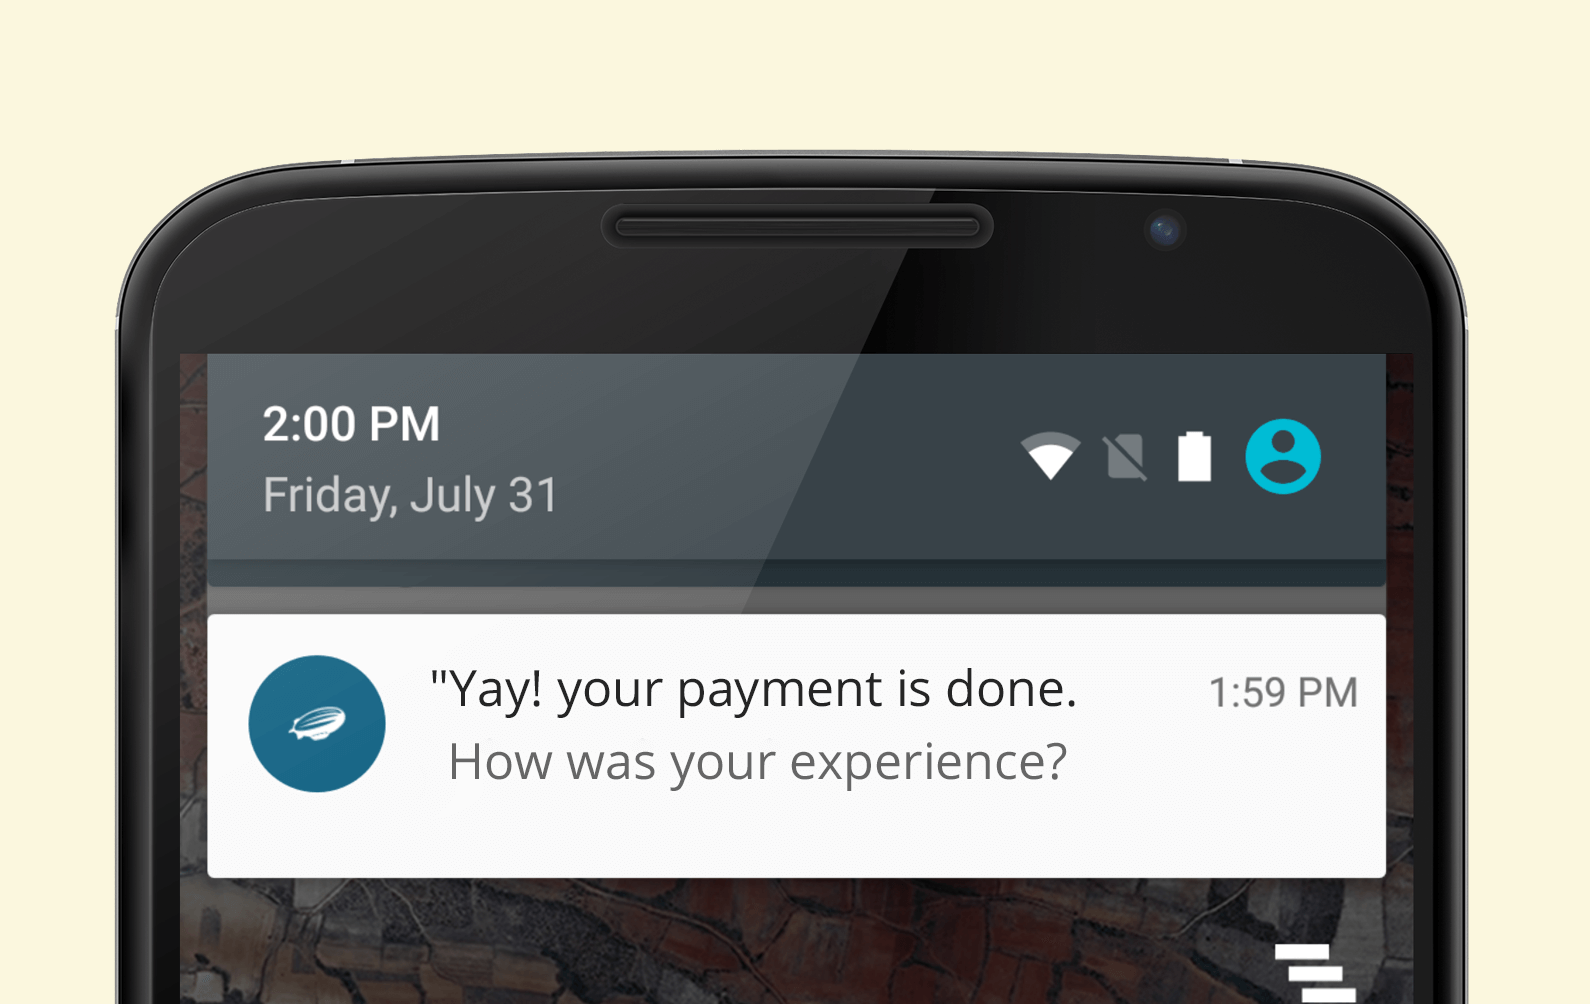 Payment confirmation through push notification android